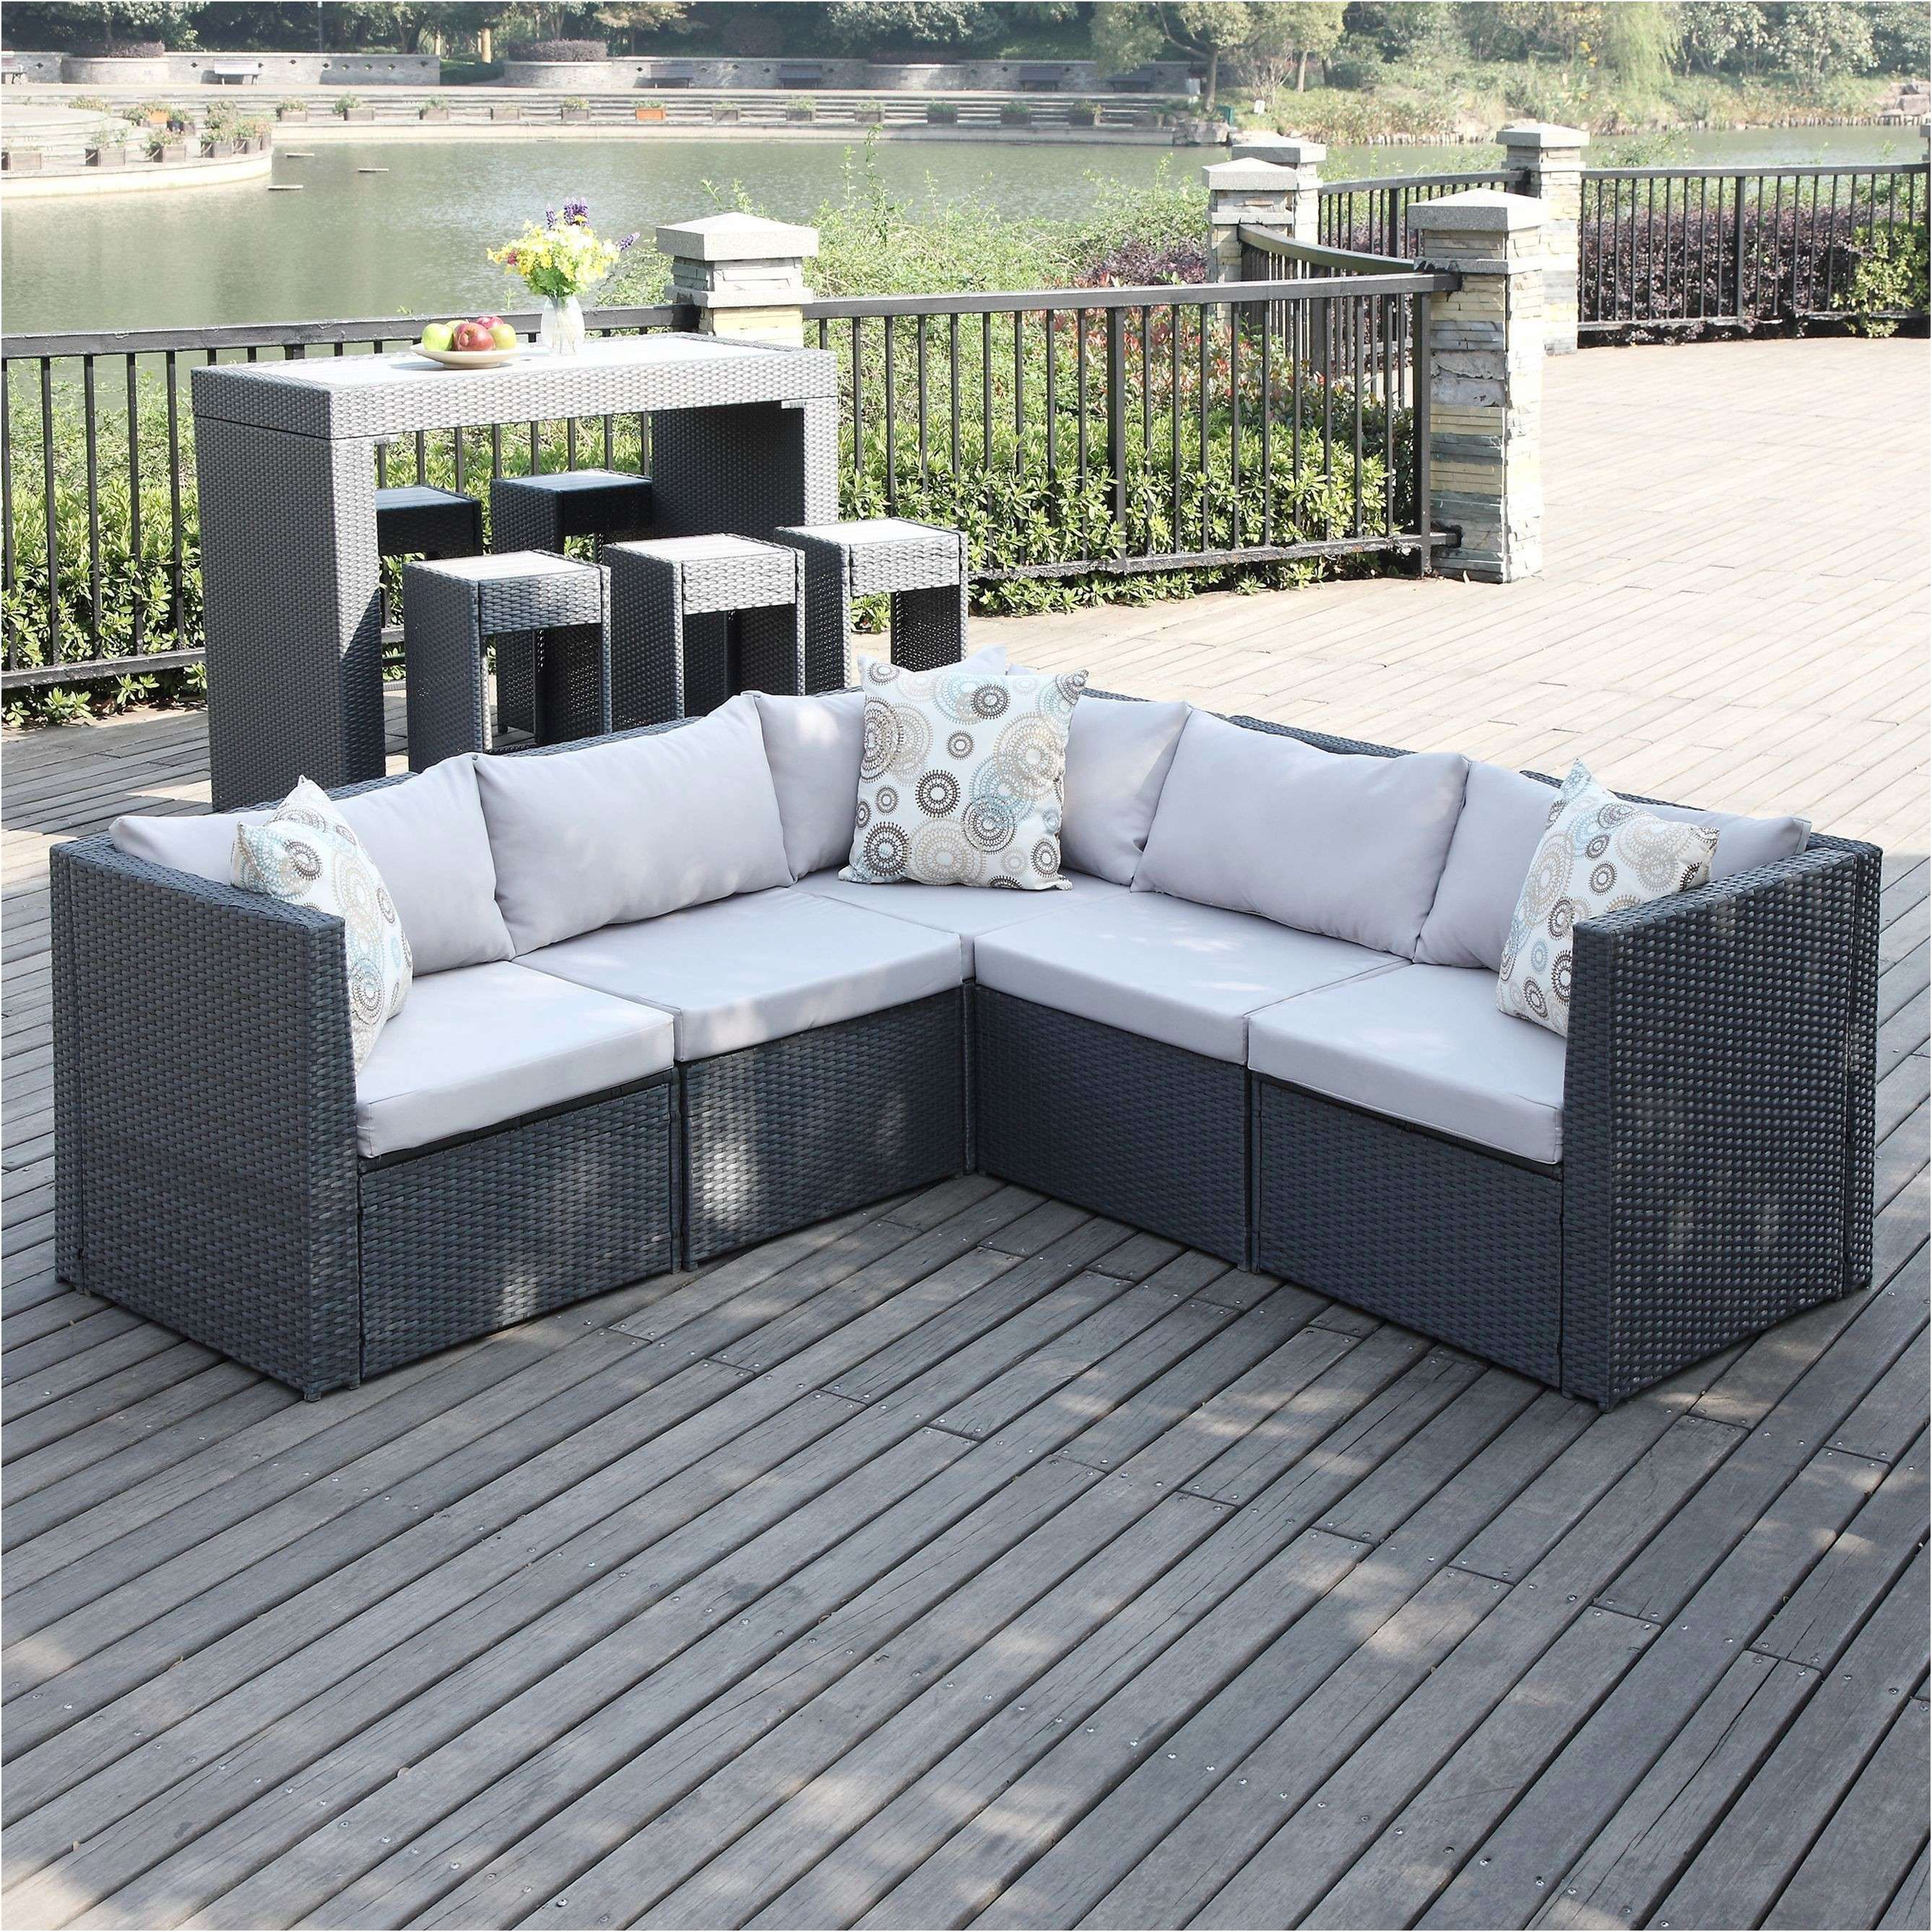 Kleine Ecksofas Mit Schlaffunktion Sofa Klein Neu Big Sofa Leder Patio Sofas Awesome In 2020 Cheap Outdoor Furniture Sectional Patio Furniture Outdoor Patio Furniture